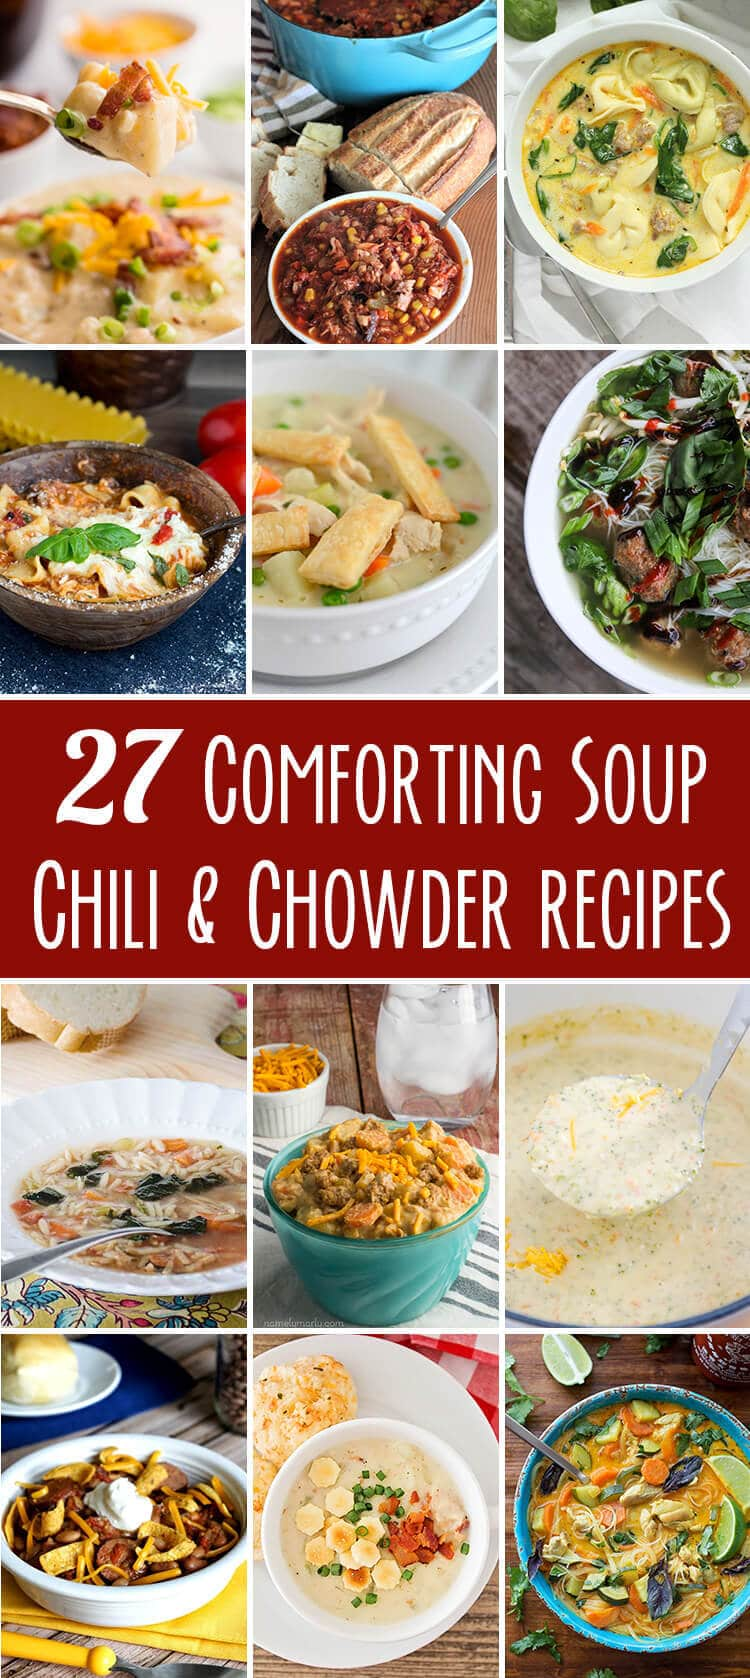 Celebrate National Soup Day with these 27 (and then some) comforting soup and chili and chowder recipes!